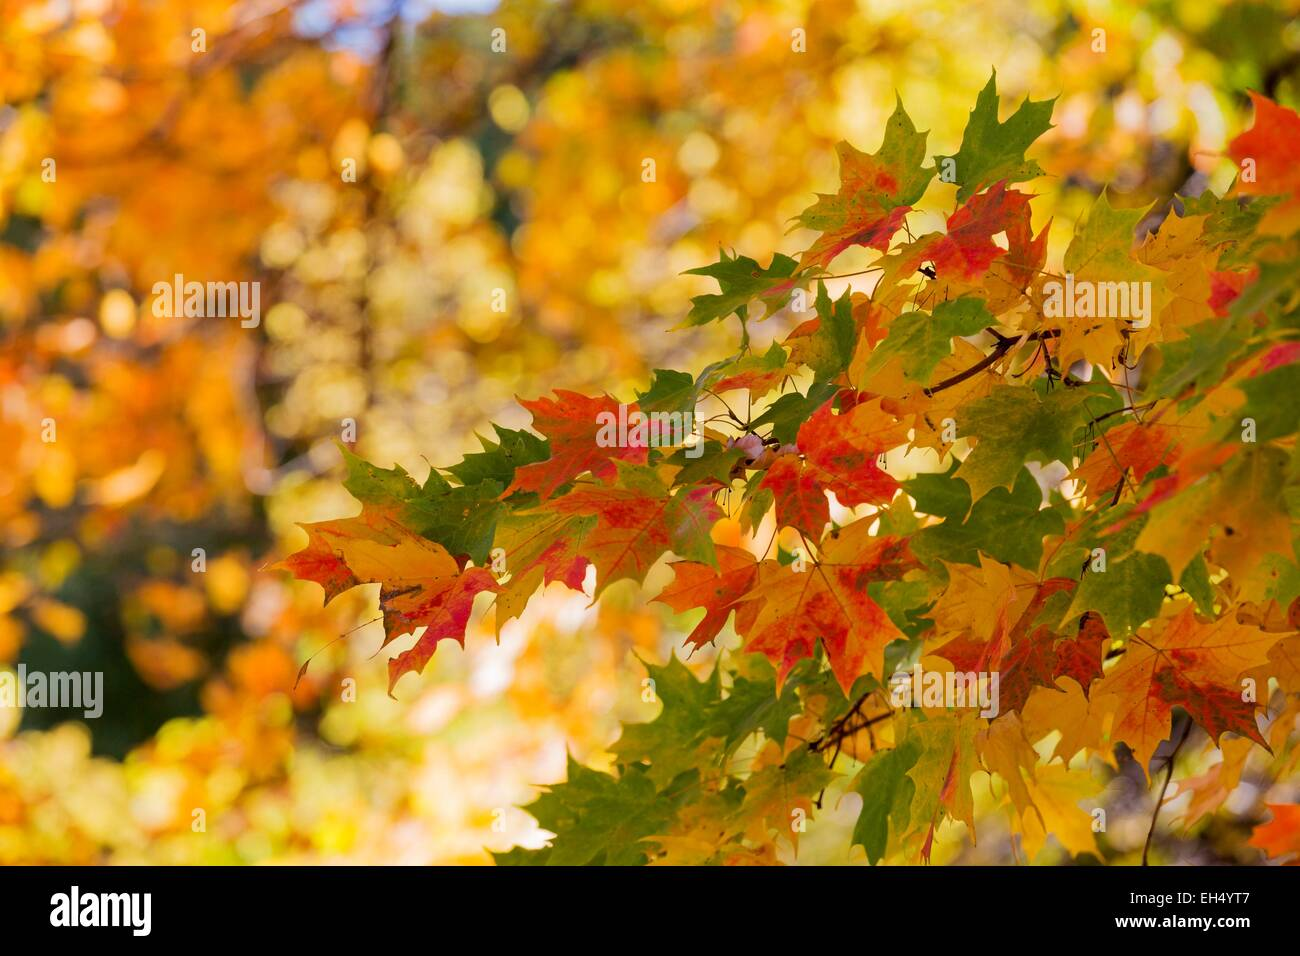 Canada, Quebec, Montreal, fall foliage - Stock Image